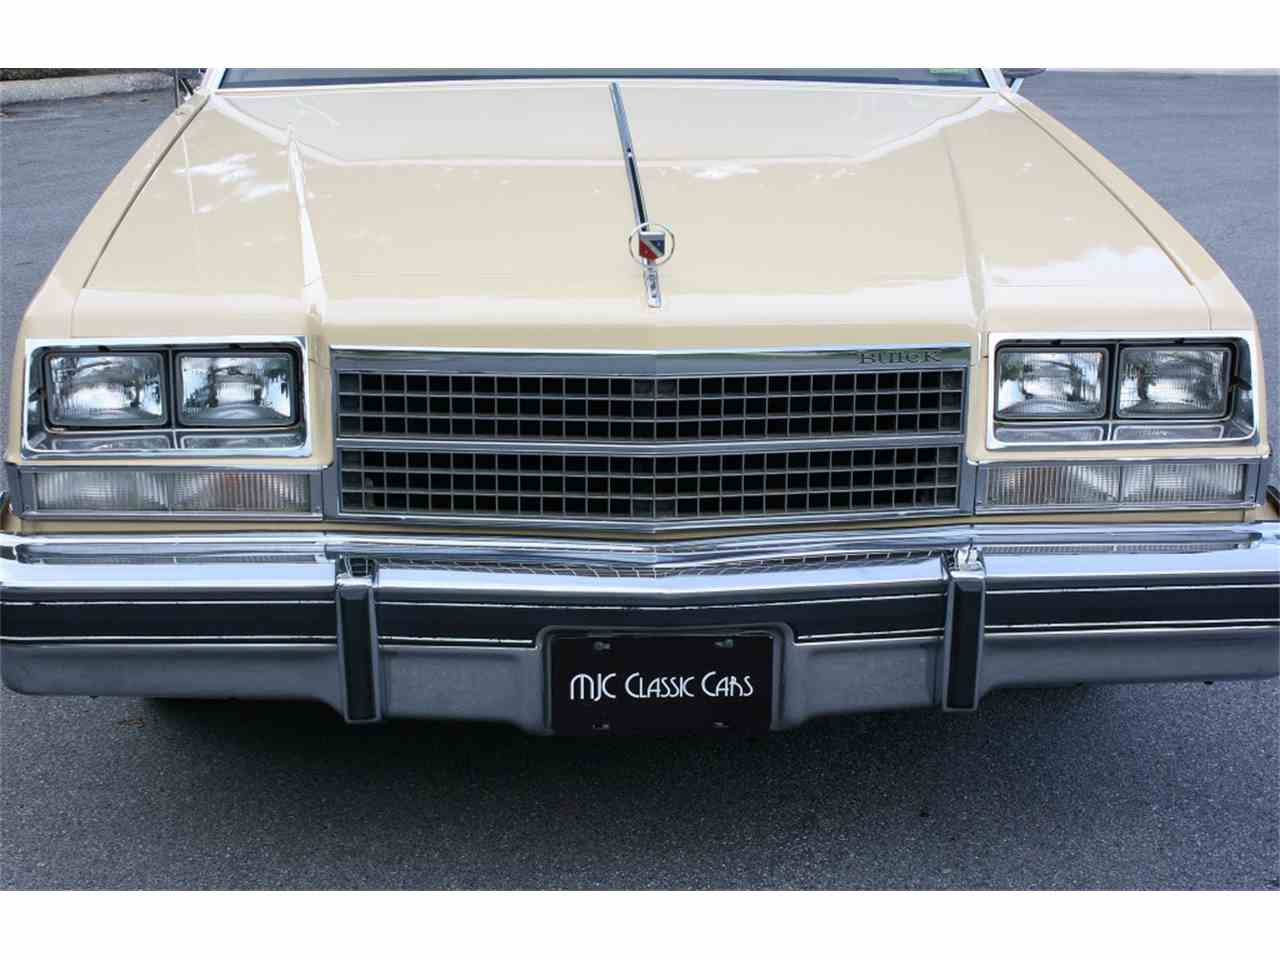 Large Picture of 1978 Buick Electra located in Florida - $13,500.00 Offered by MJC Classic Cars - J5J3